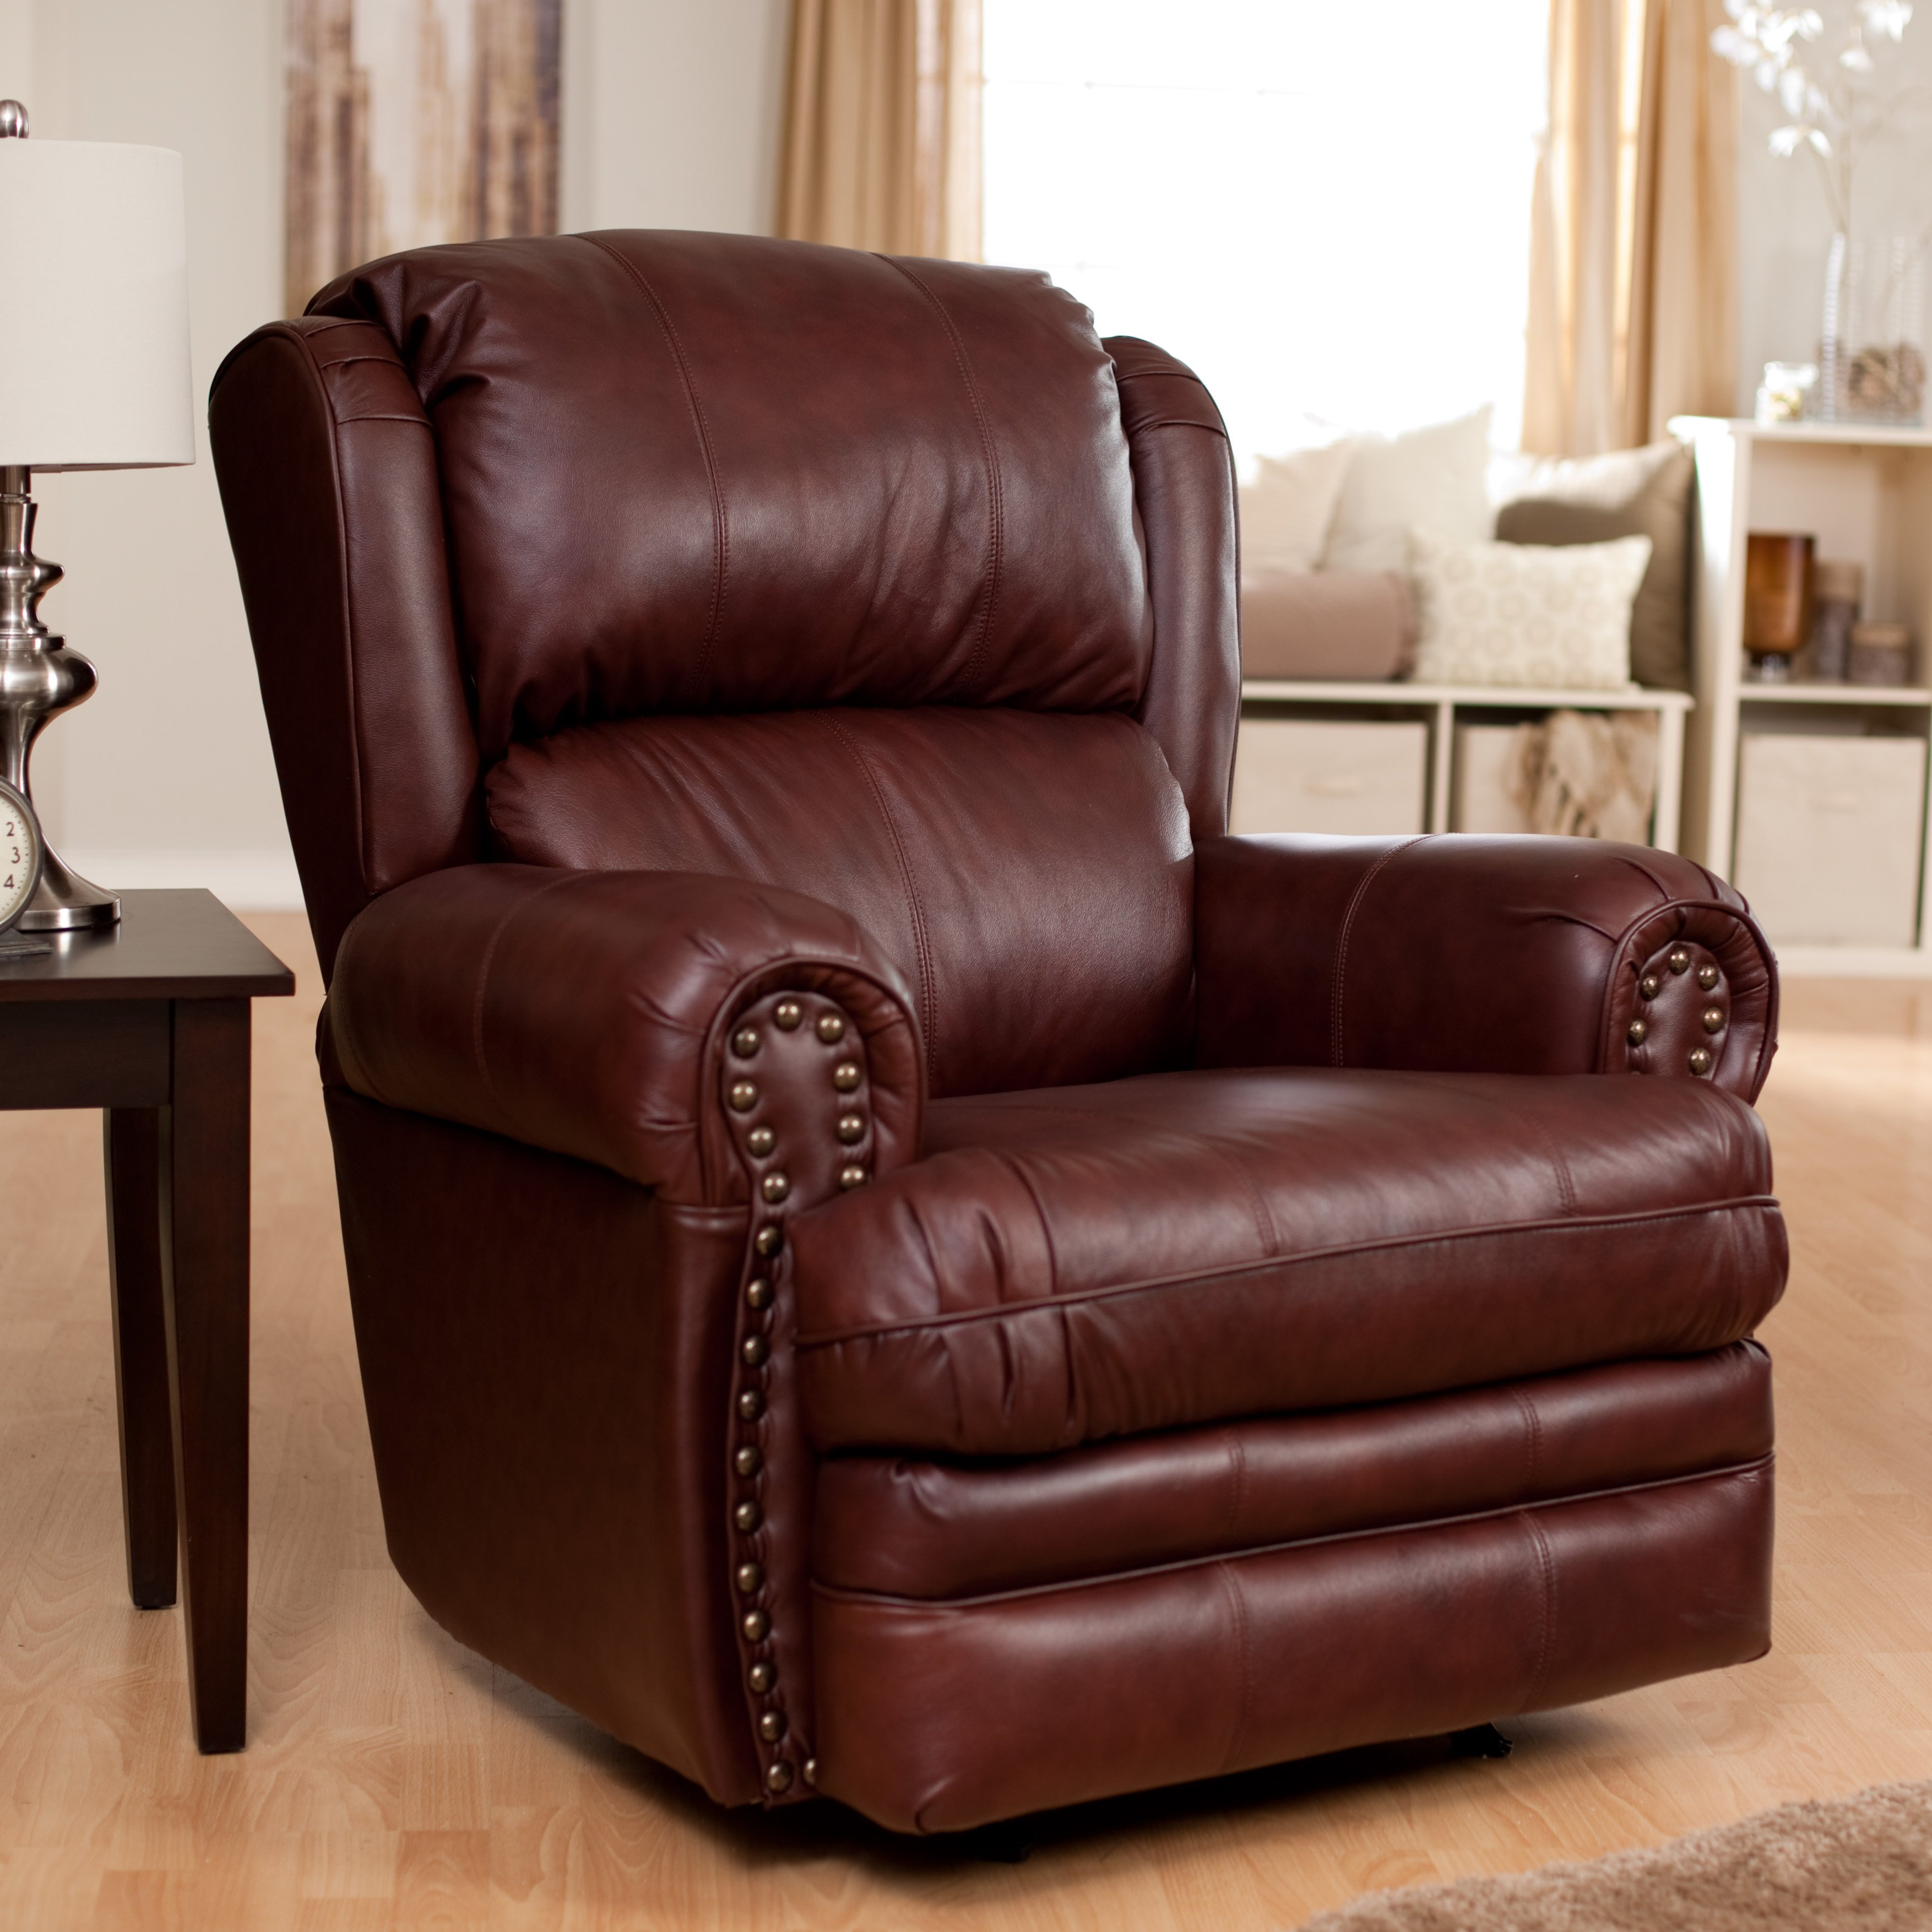 Brown Recliner With Wooden Table And L& In Hardwood Floor Room & Top Rated Recliners | HomesFeed islam-shia.org